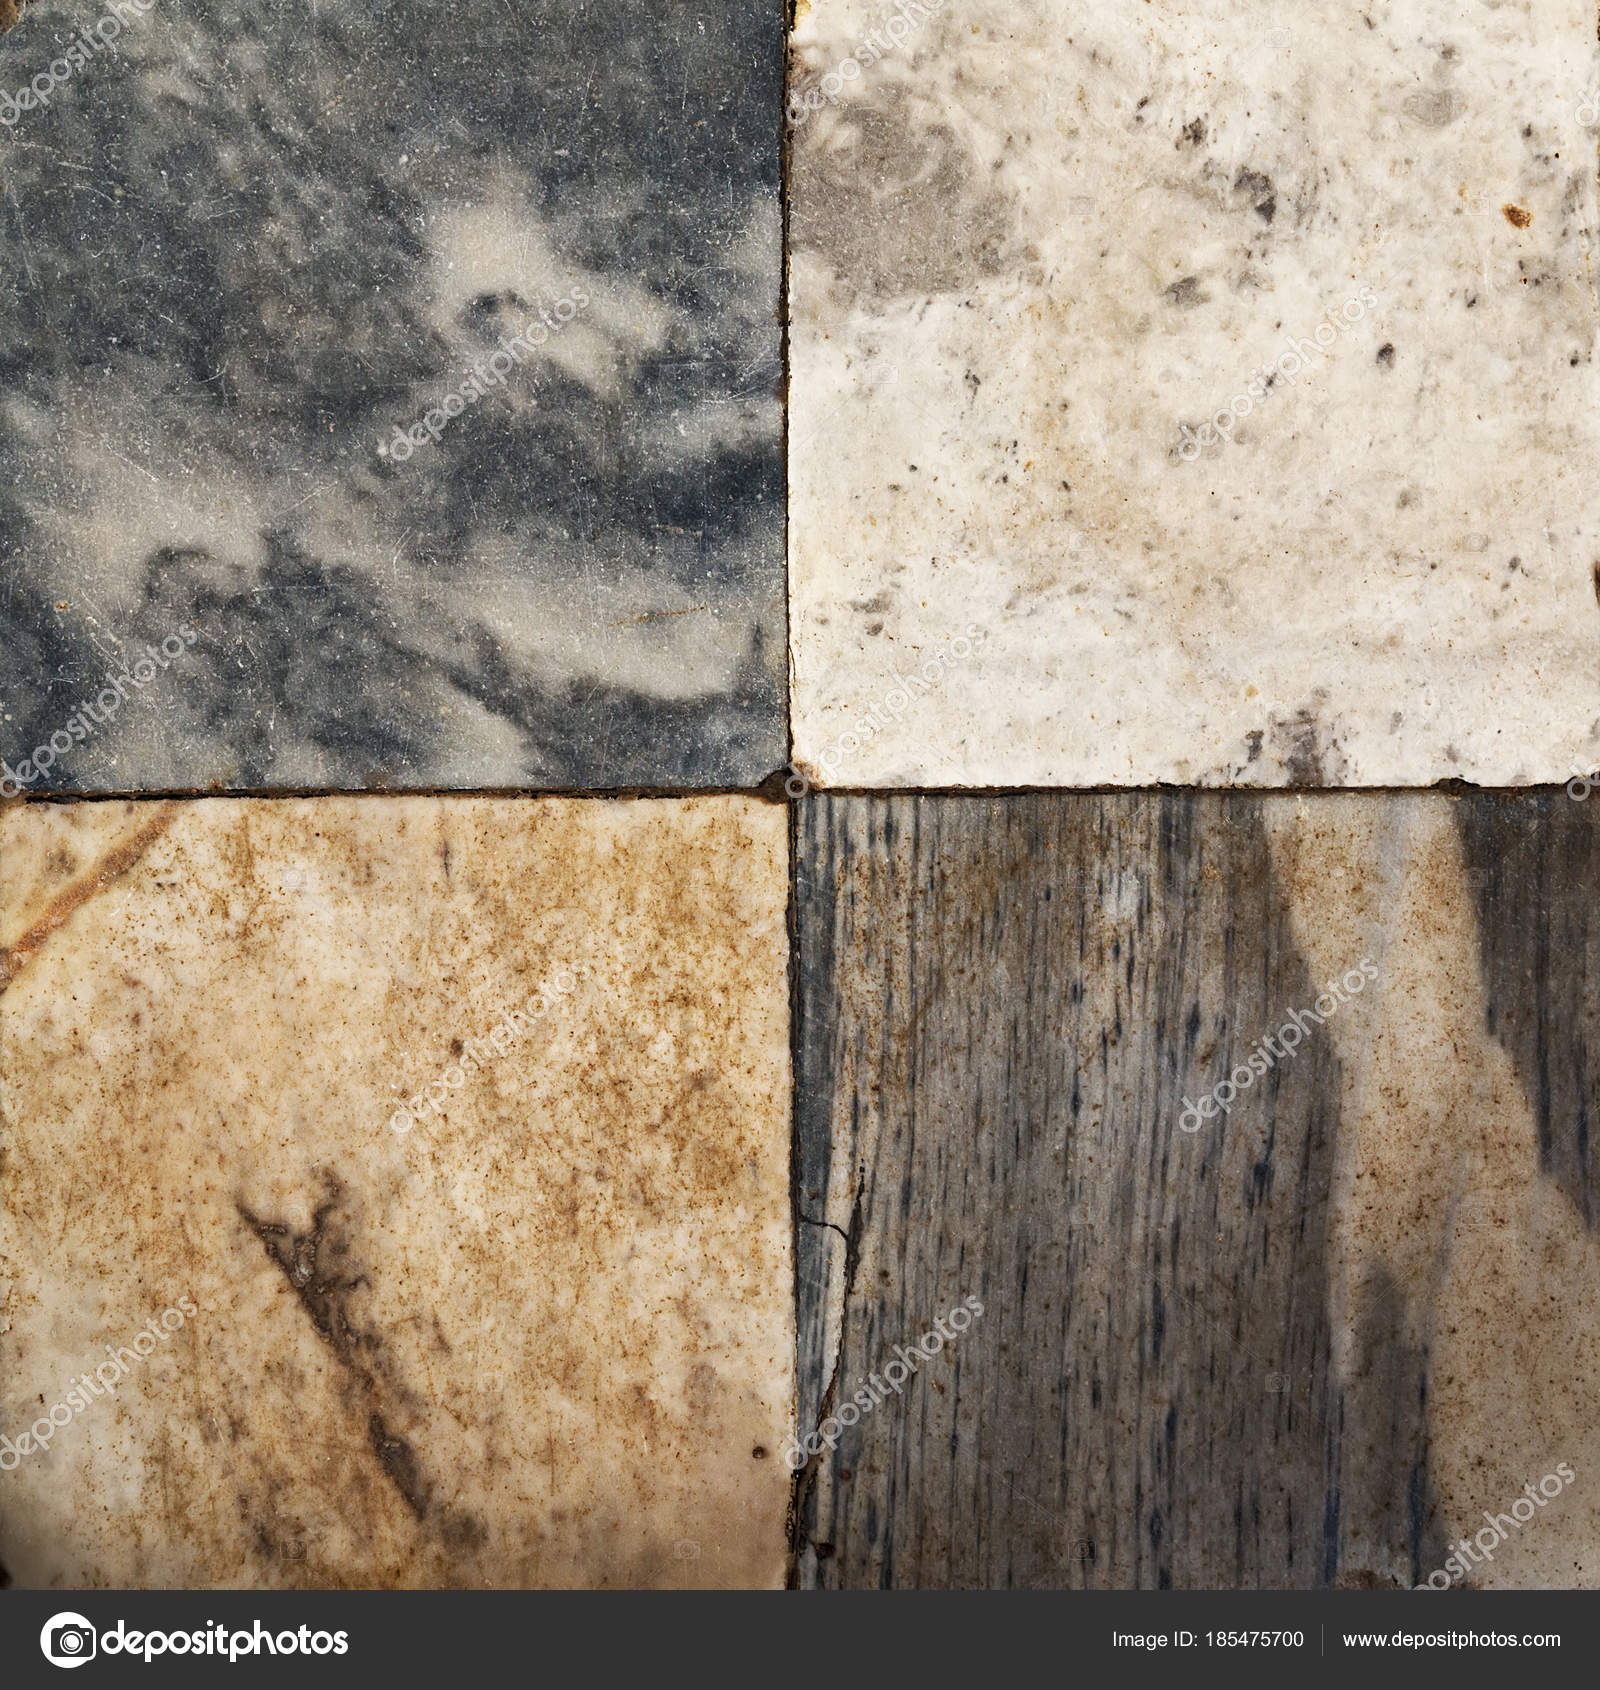 Granite Floor Tile Marble Samples For Texture Background B Stock Photo